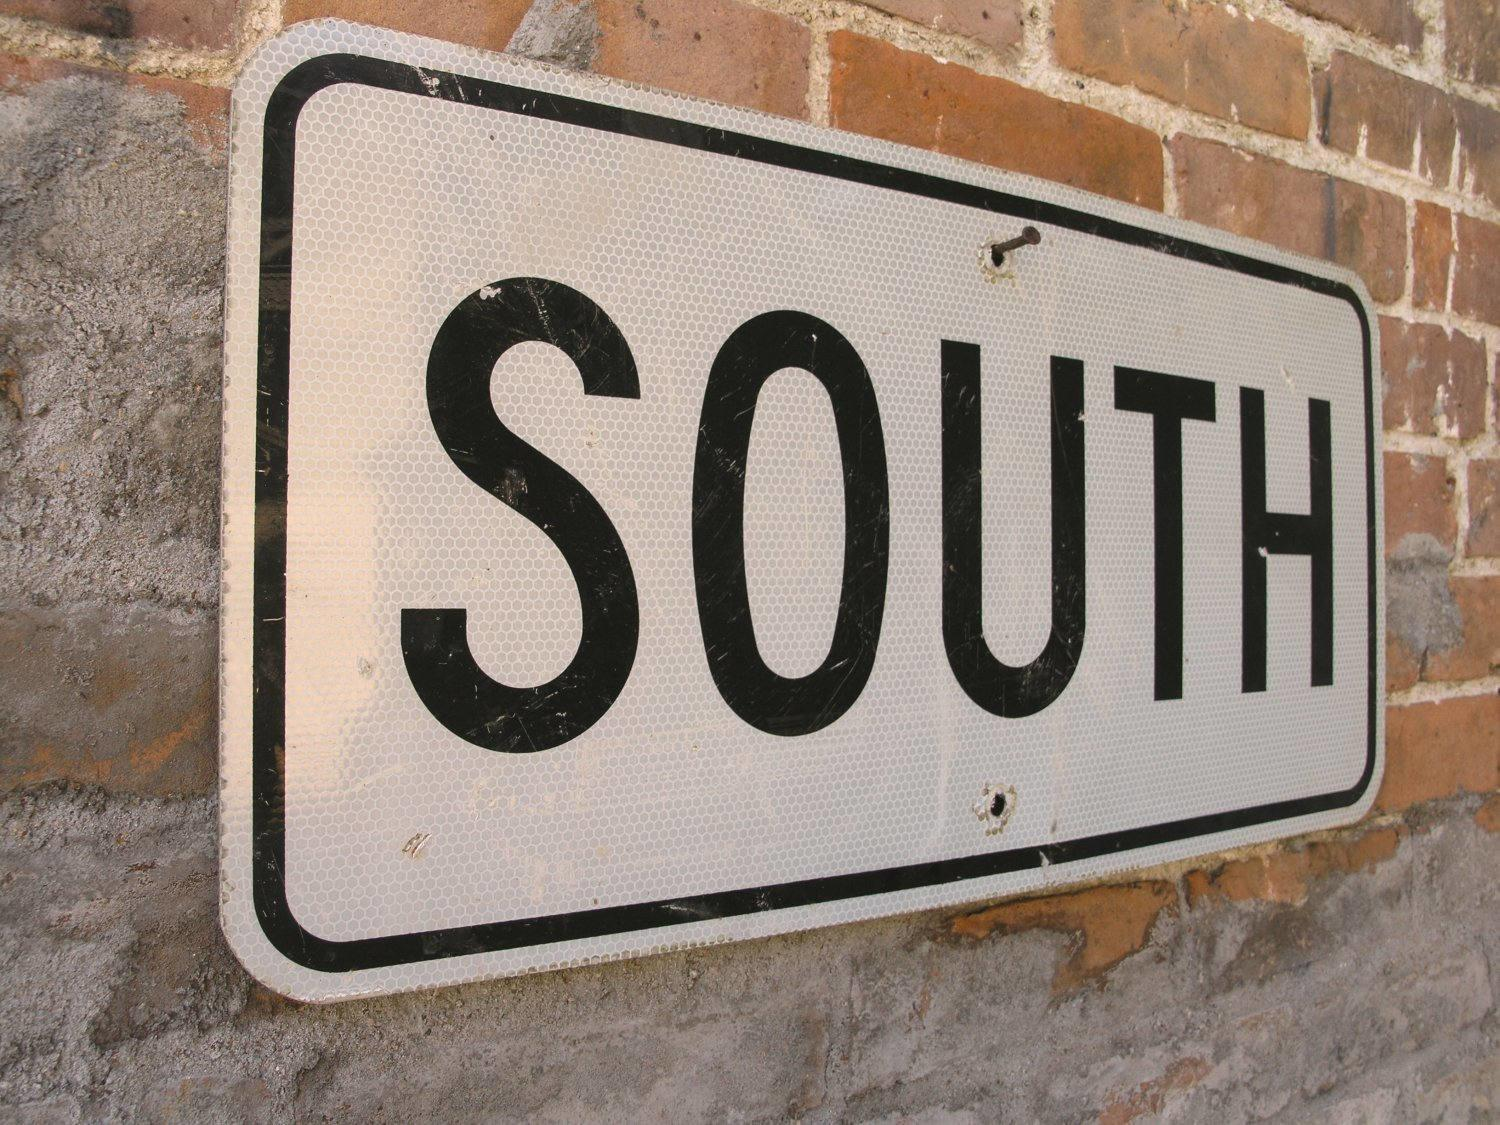 South Sign Metal Road Country Decor Street Traffic